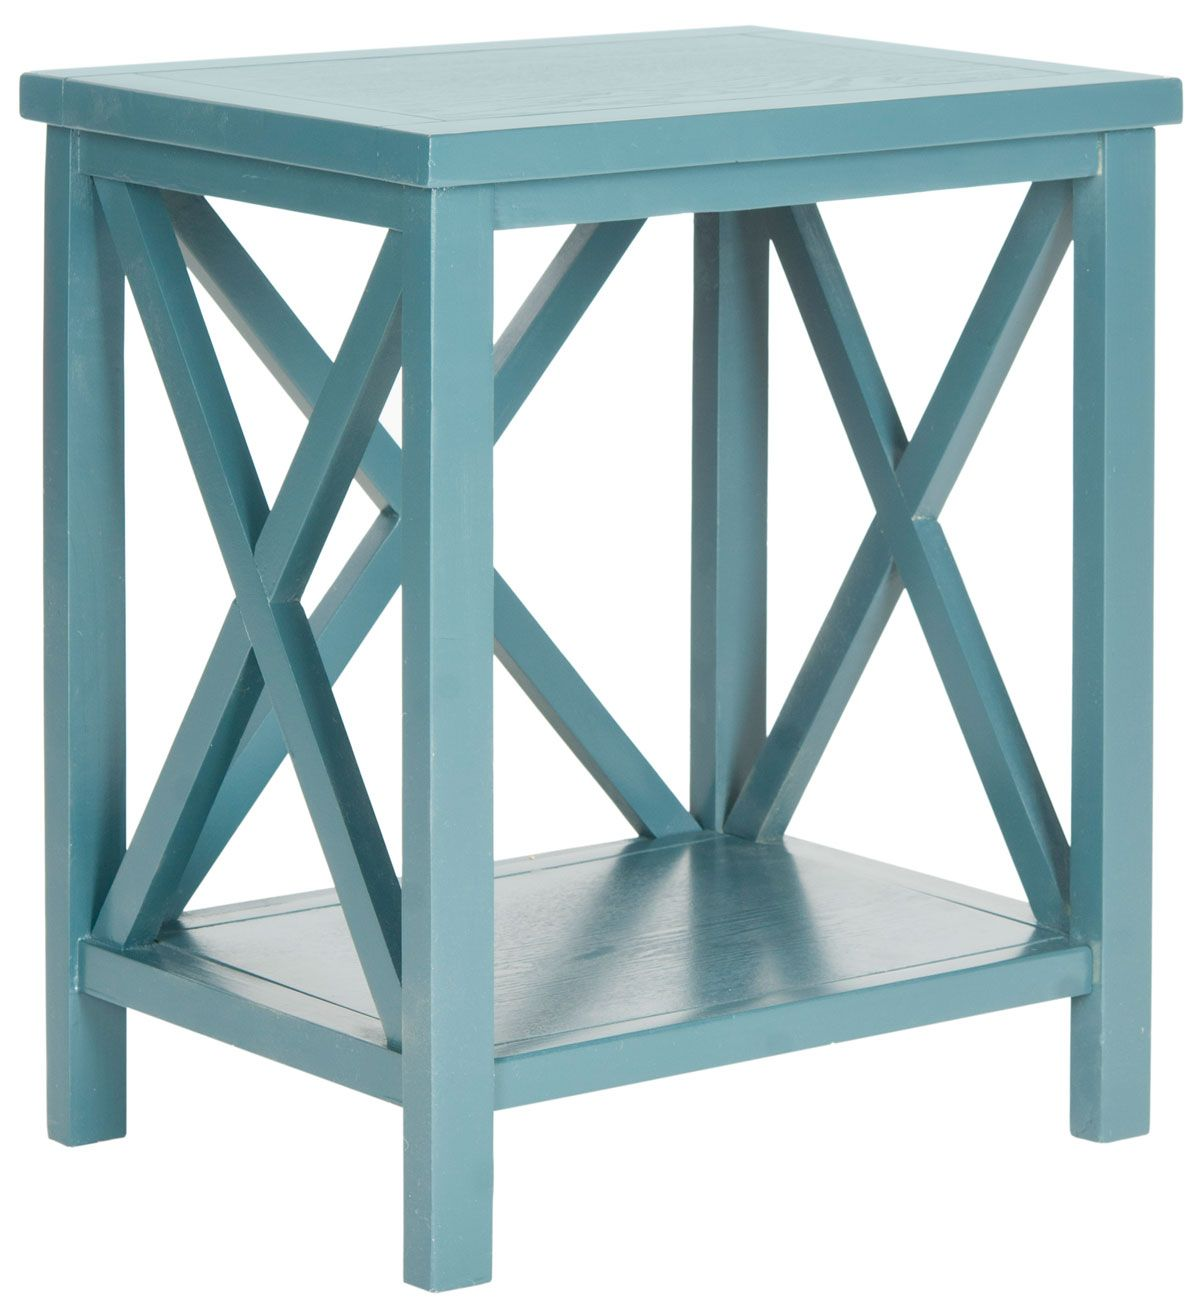 accent tables storage furniture blue table safavieh outdoor patio sofa modern living room chairs bedroom tray console ashley end coffee dining clothes rustic wood with white